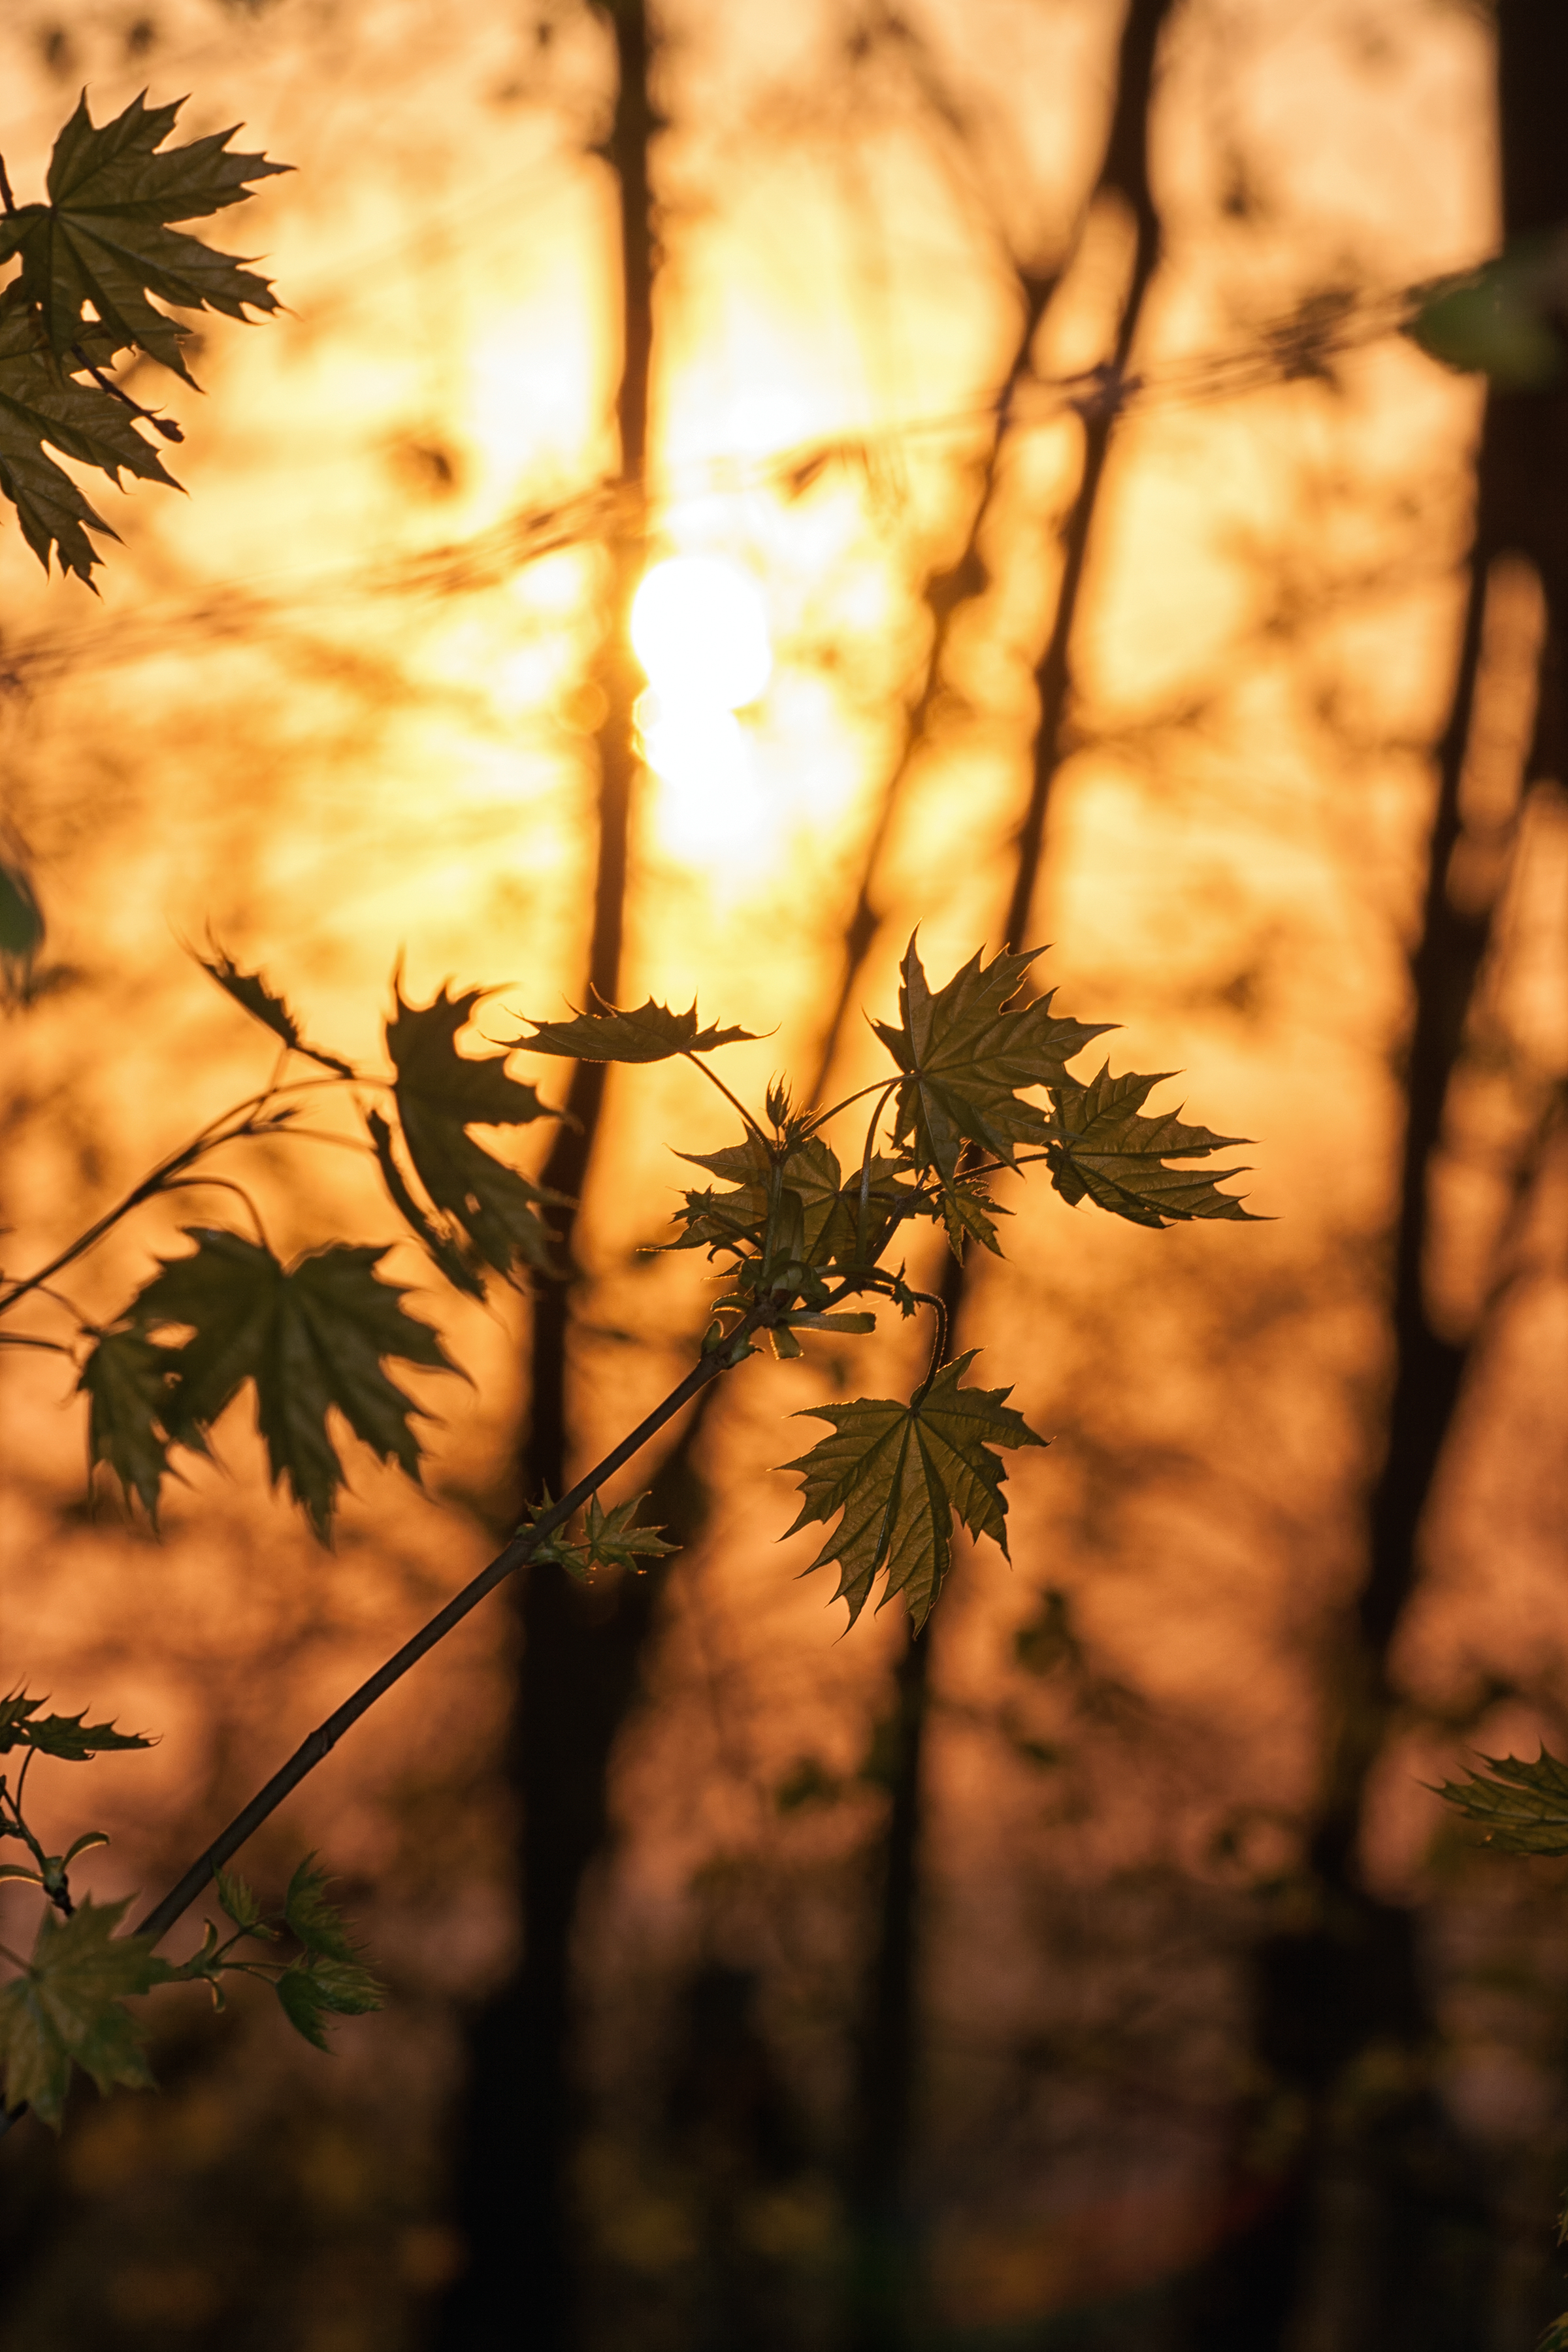 71224 download wallpaper Nature, Maple, Branches, Leaves, Trees, Sunlight screensavers and pictures for free